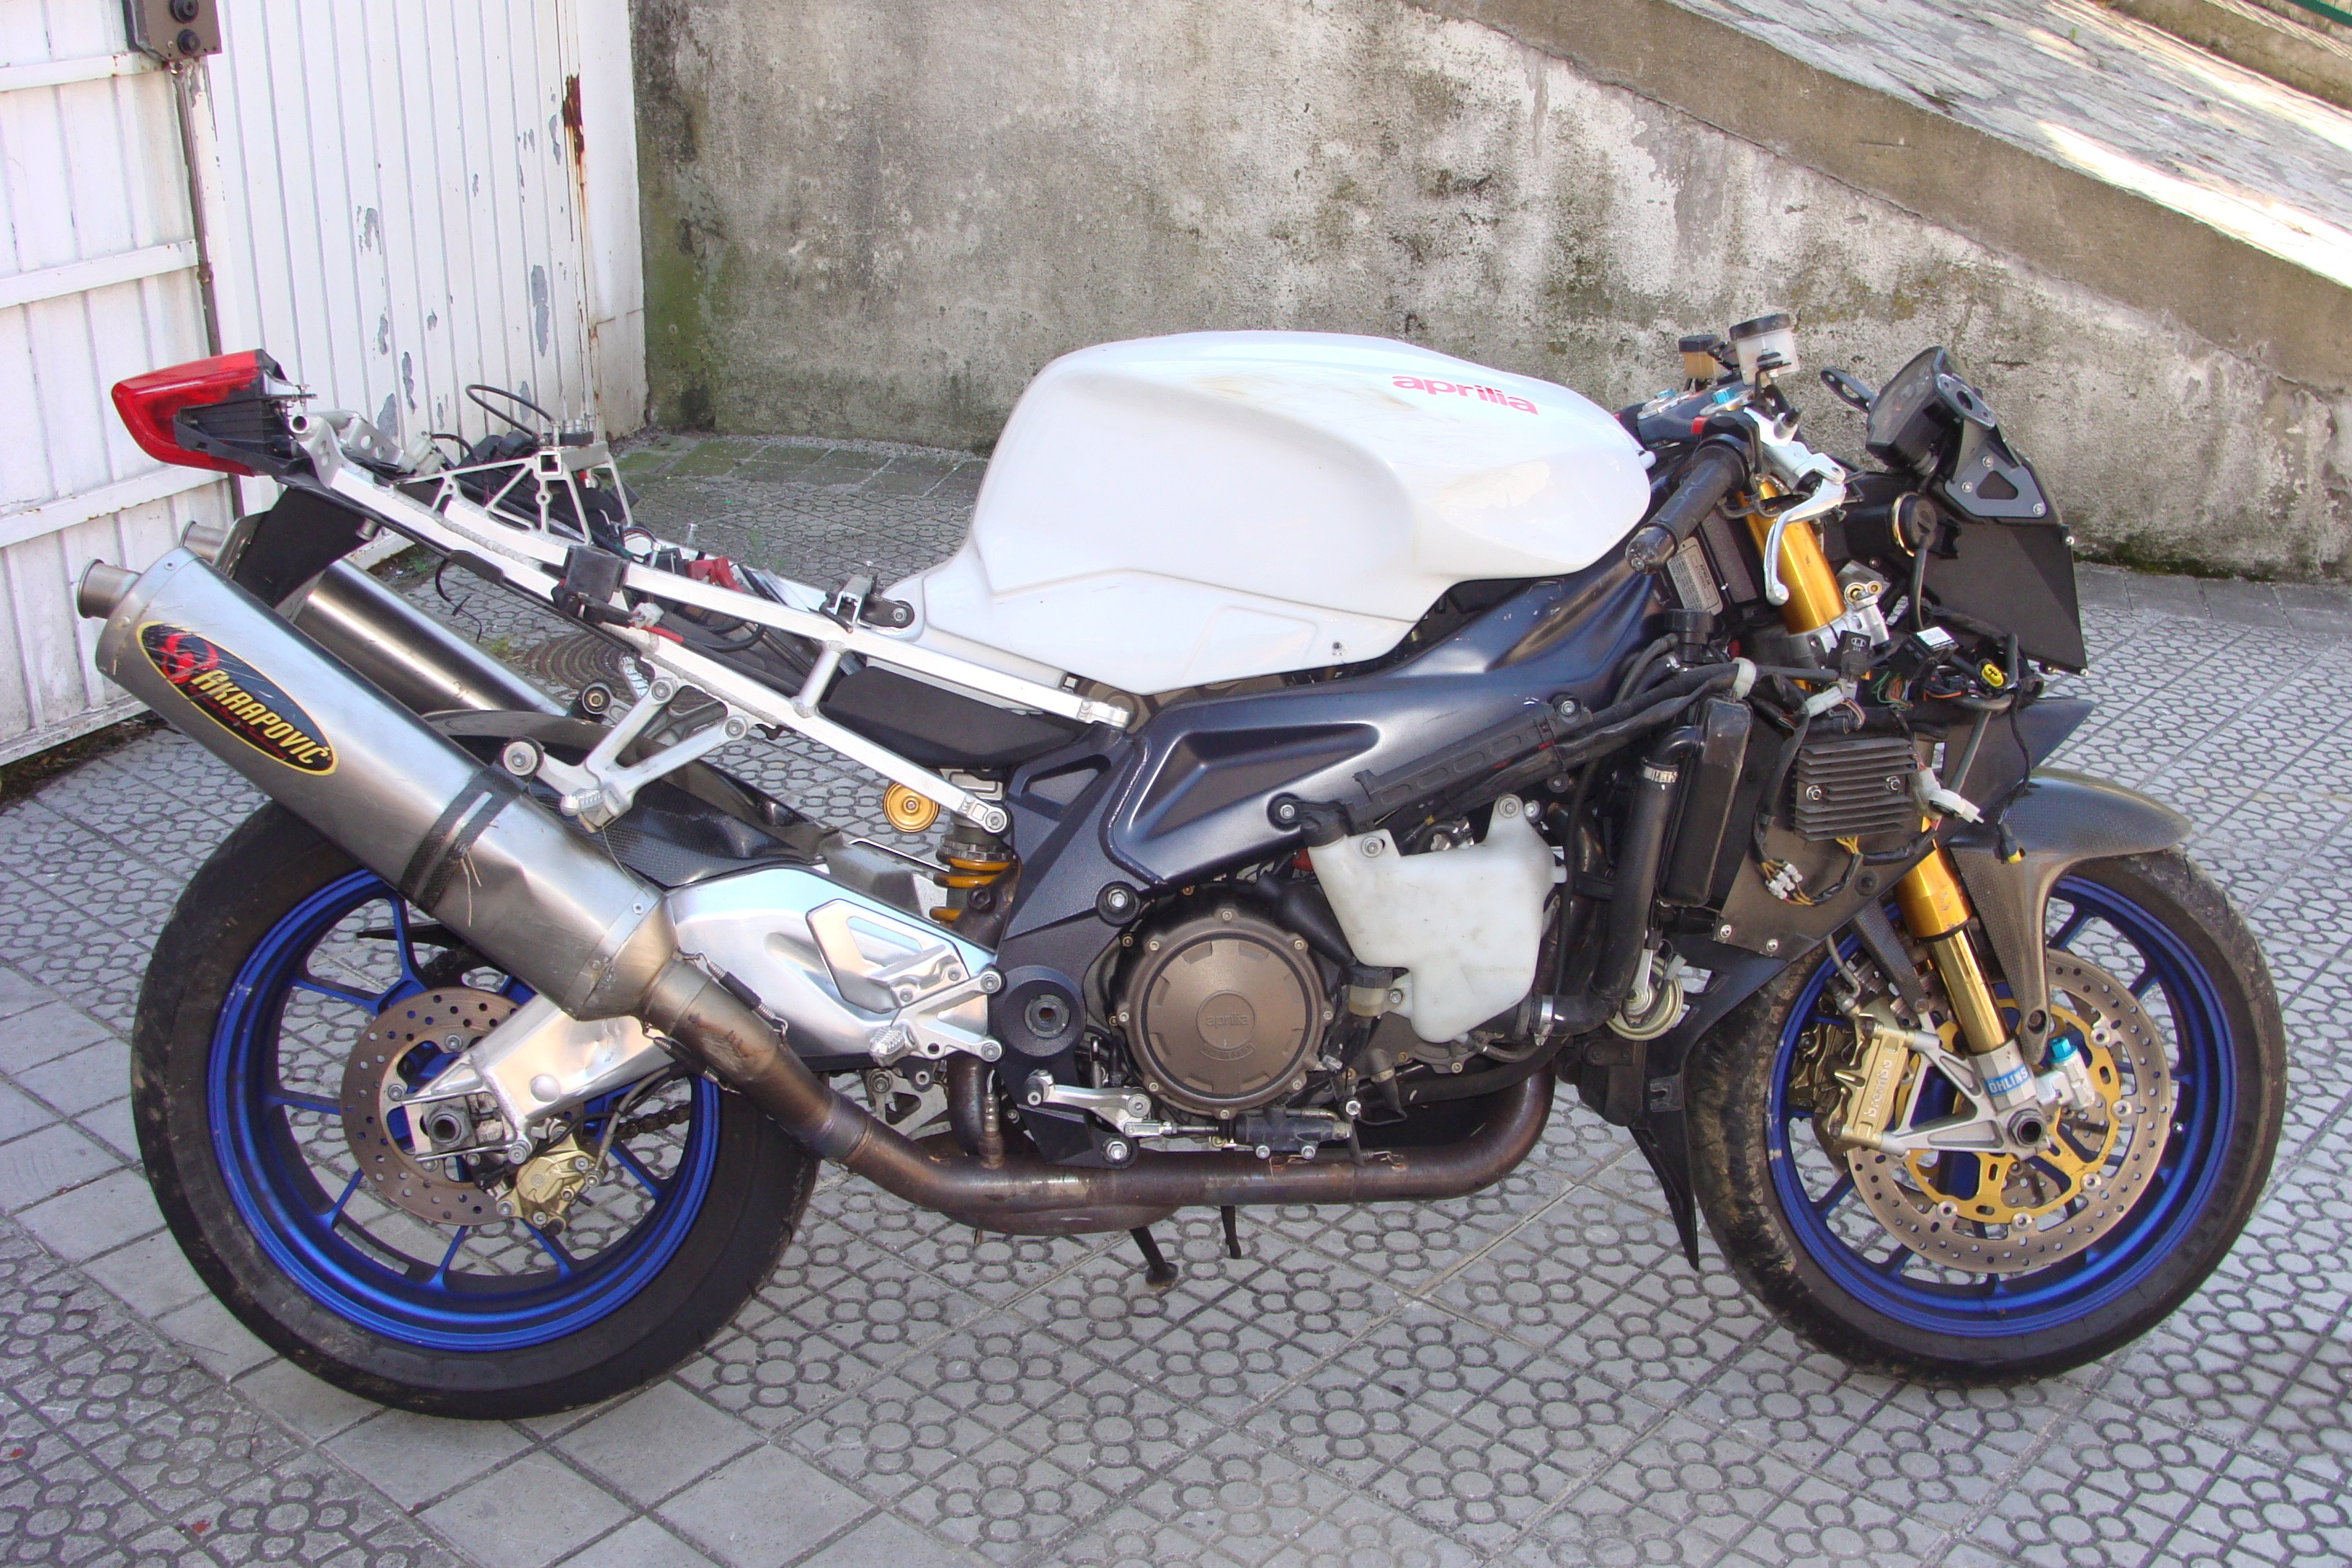 RSV Mille Factory 2005